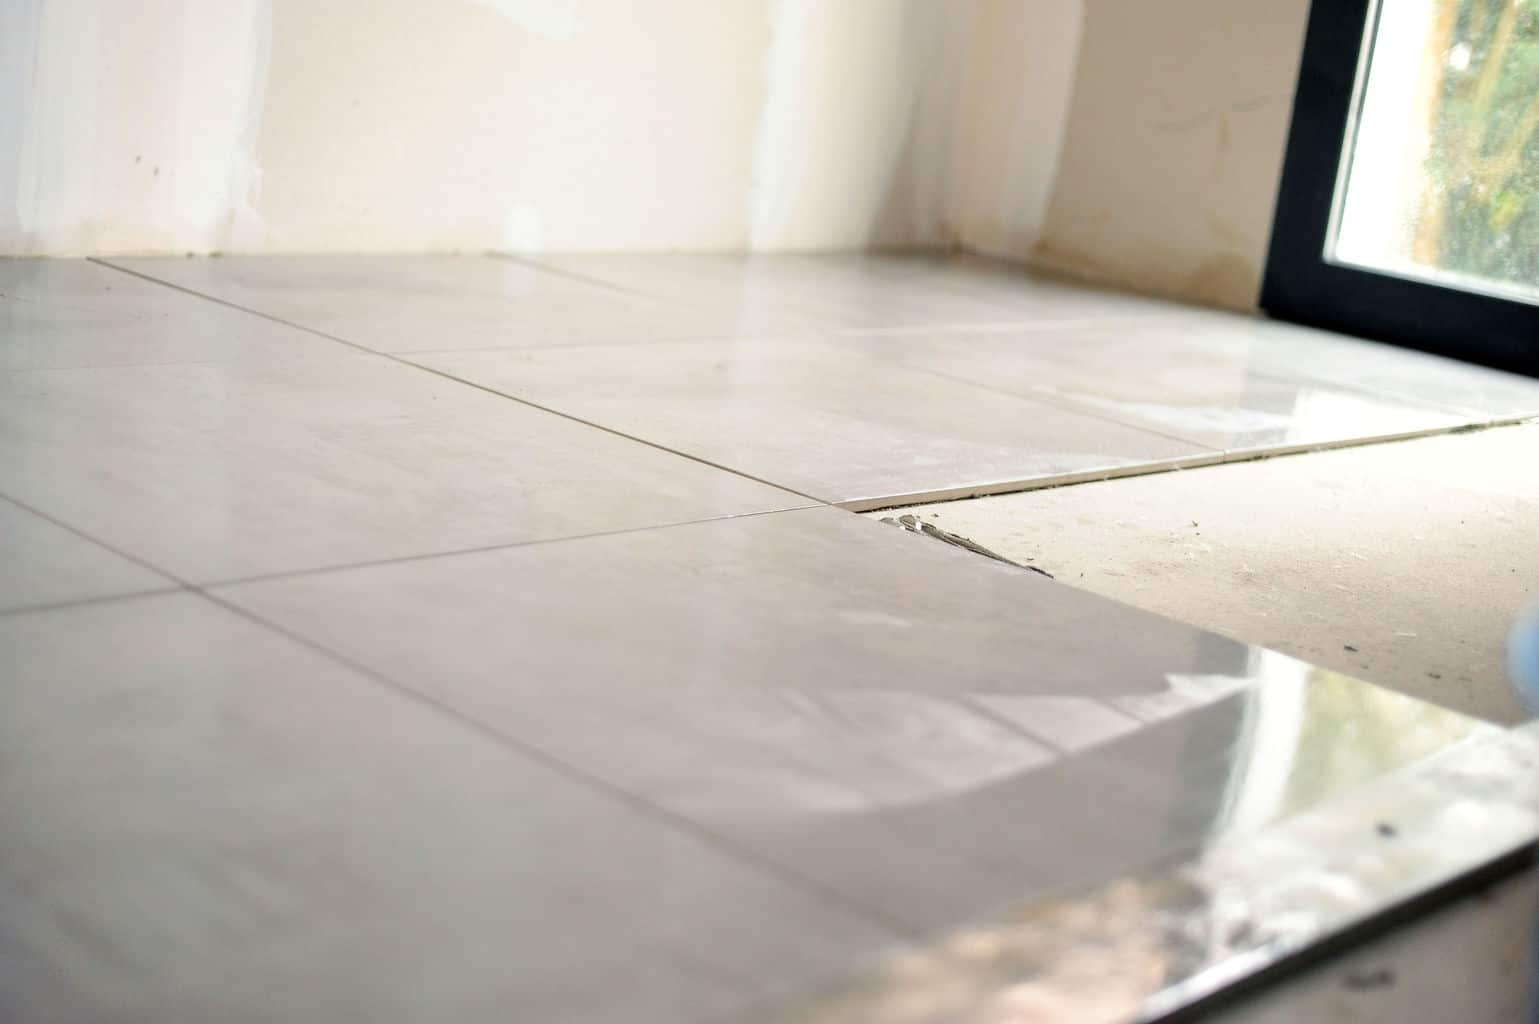 How to install ceramic floor tile on concrete diy tips Ceramic tile flooring installation